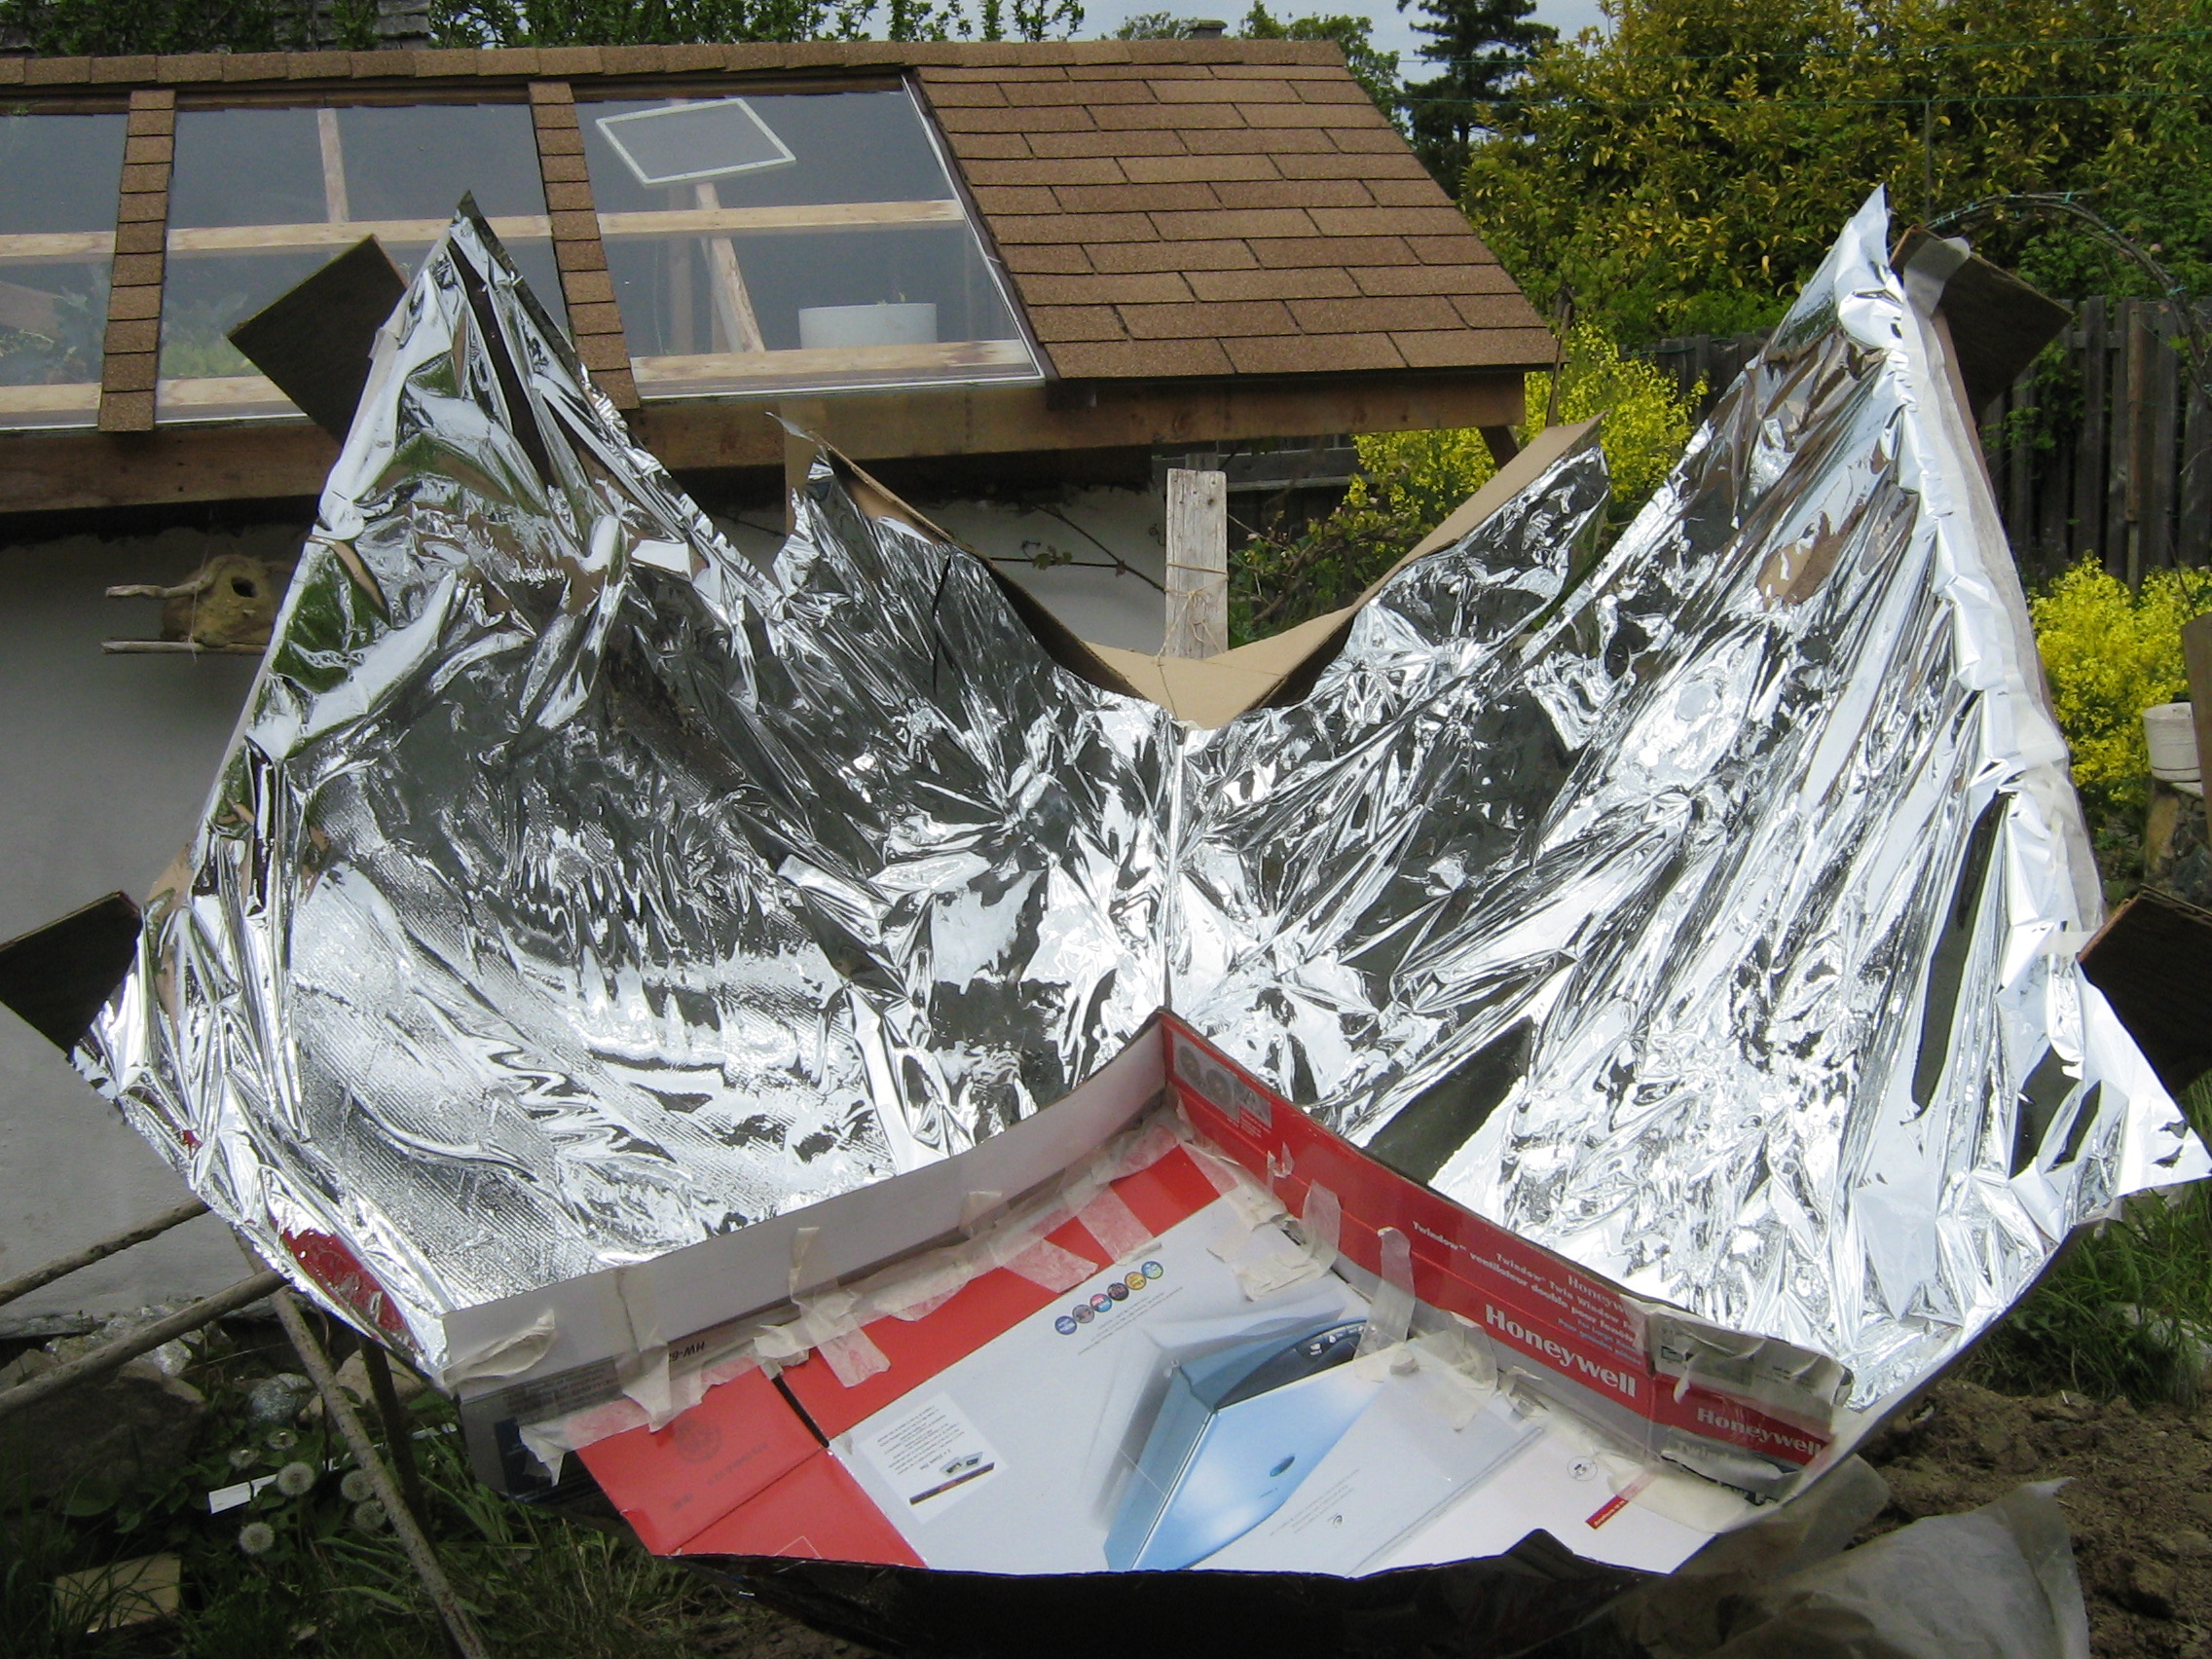 Kyoto trough solar cooker mimics a parabolic dish without a thousand cuts!